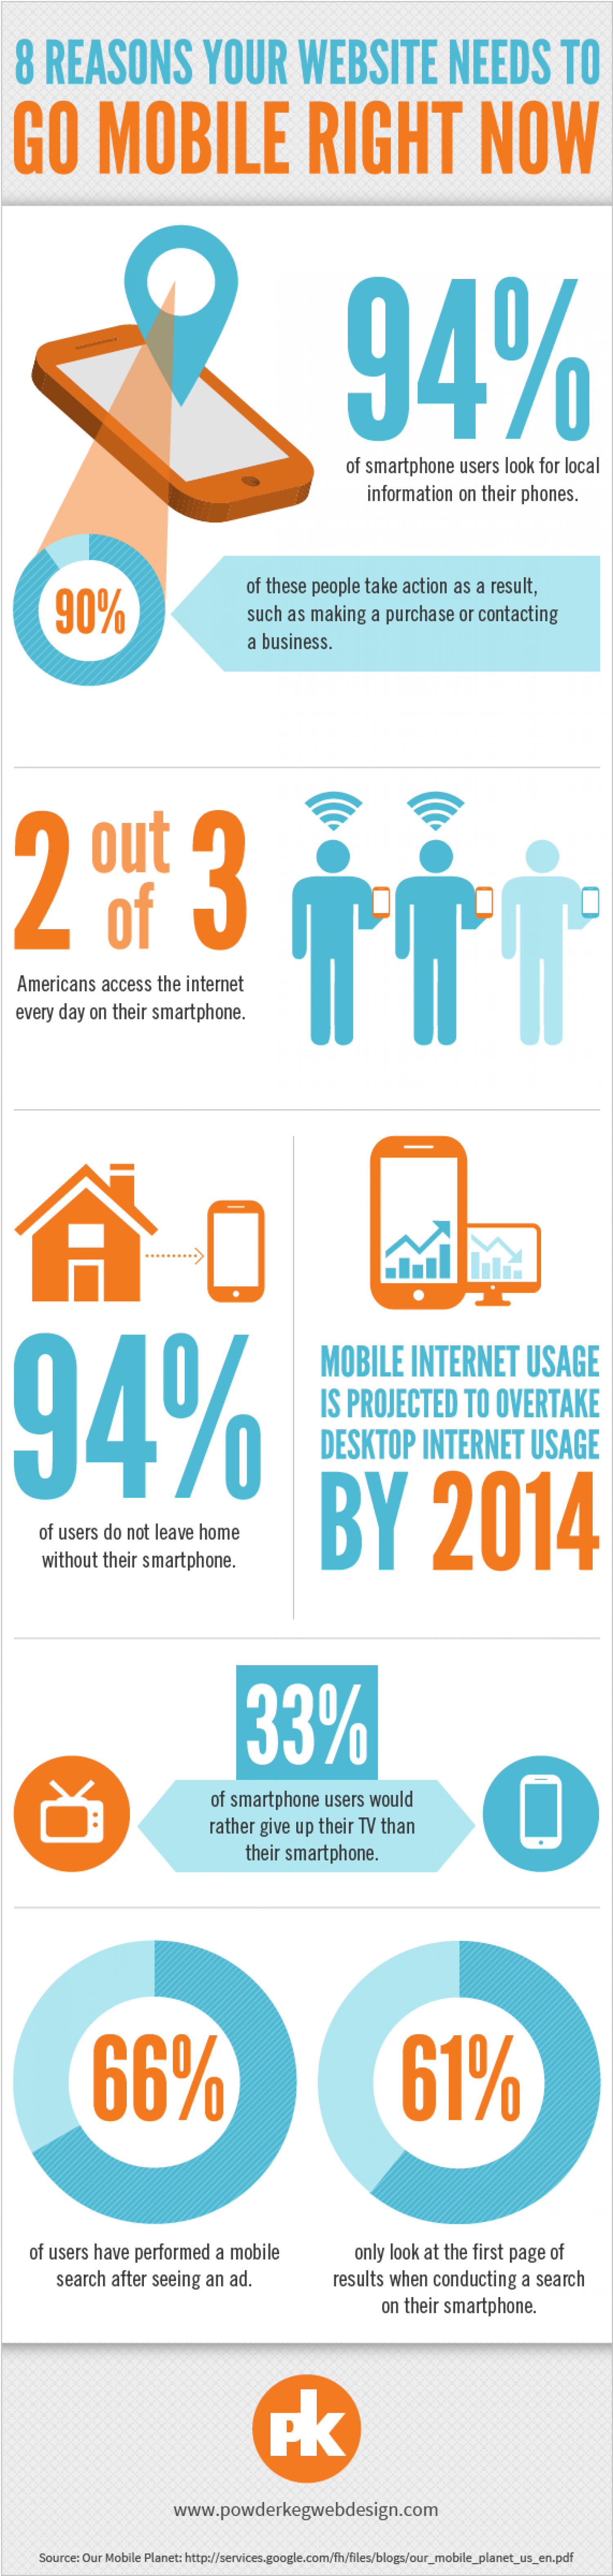 8 Reasons Your Website Need To Go Mobile RIGHT NOW Infographic